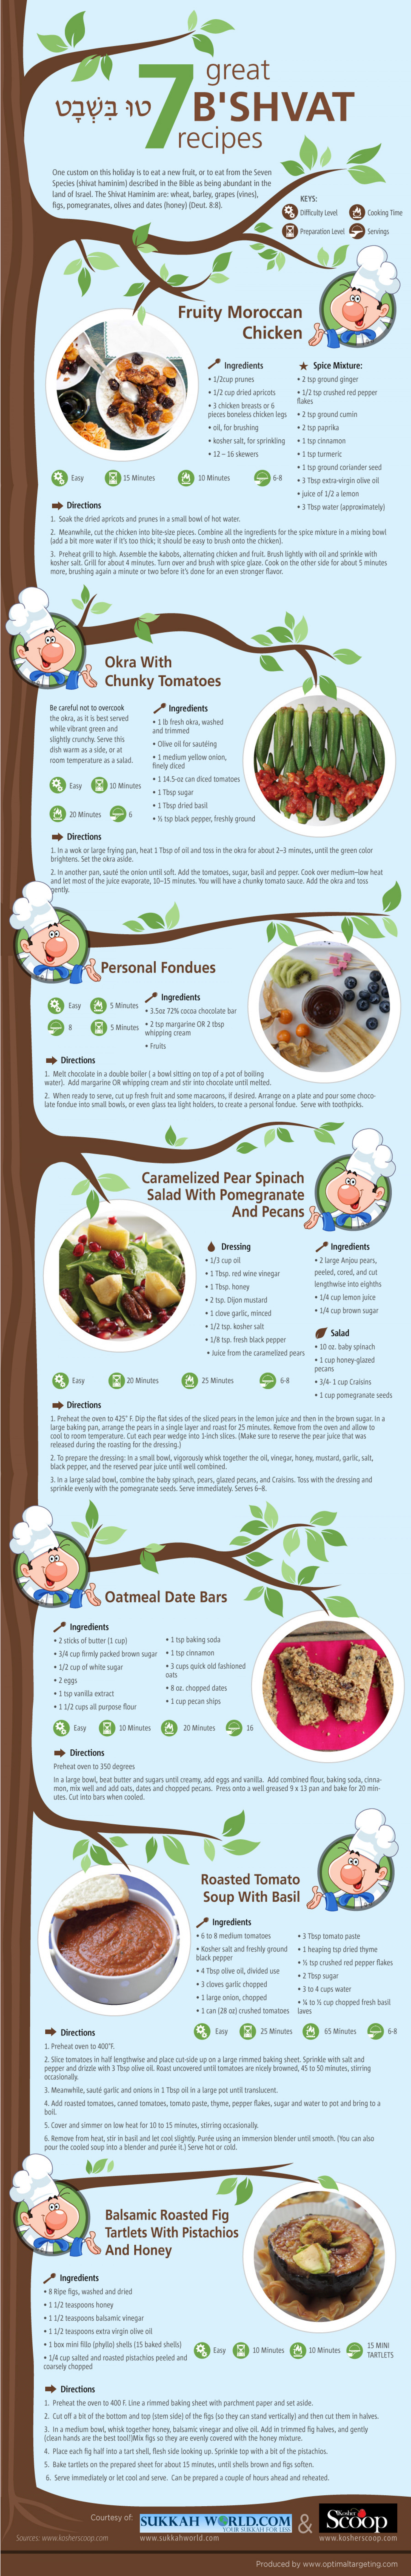 7 Great Tu Bishvat Recipes Infographic